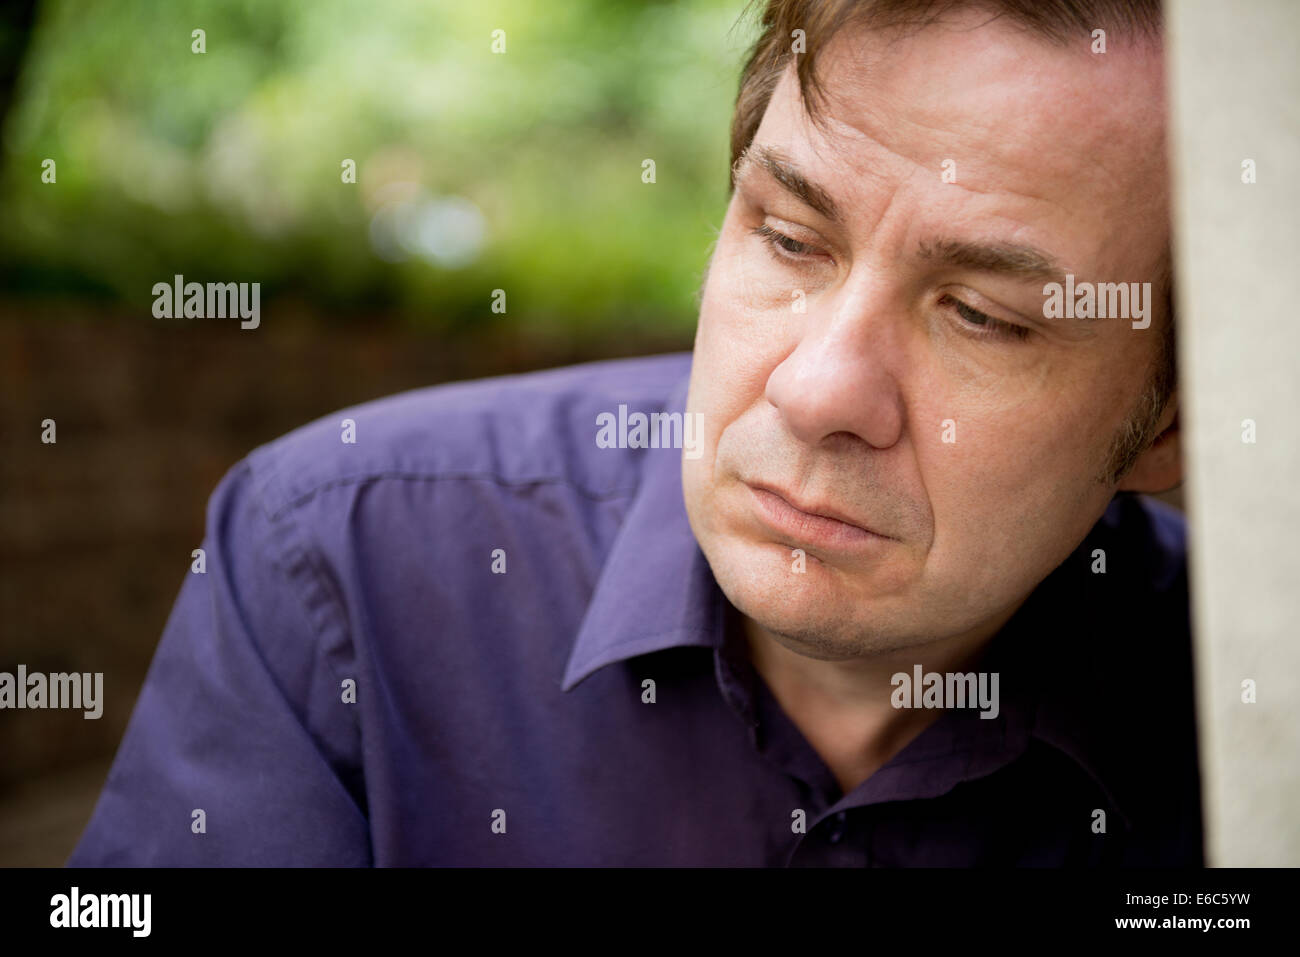 Portrait of a sad man, leaning his head against a wall. - Stock Image